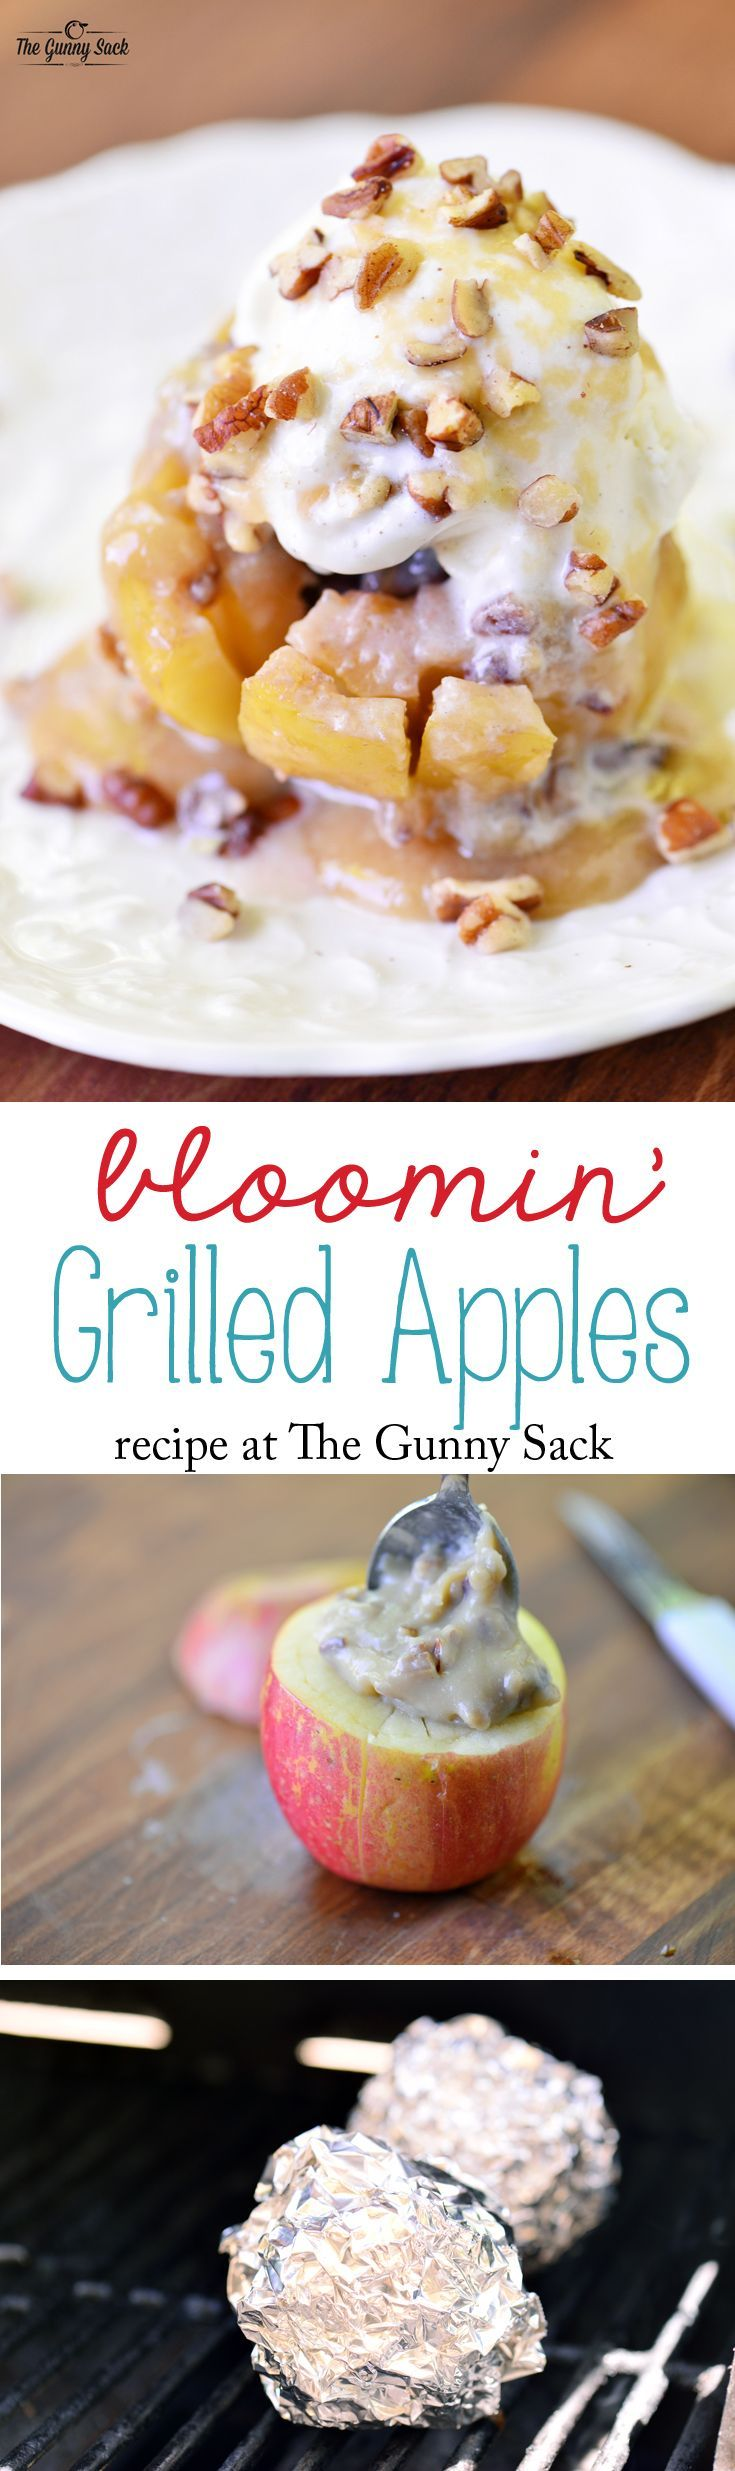 Bloomin' Grilled Apples Recipe: These bloomin' apples are stuffed with maple cream caramel sauce and pecans. Cook them on the grill for a summer dessert!